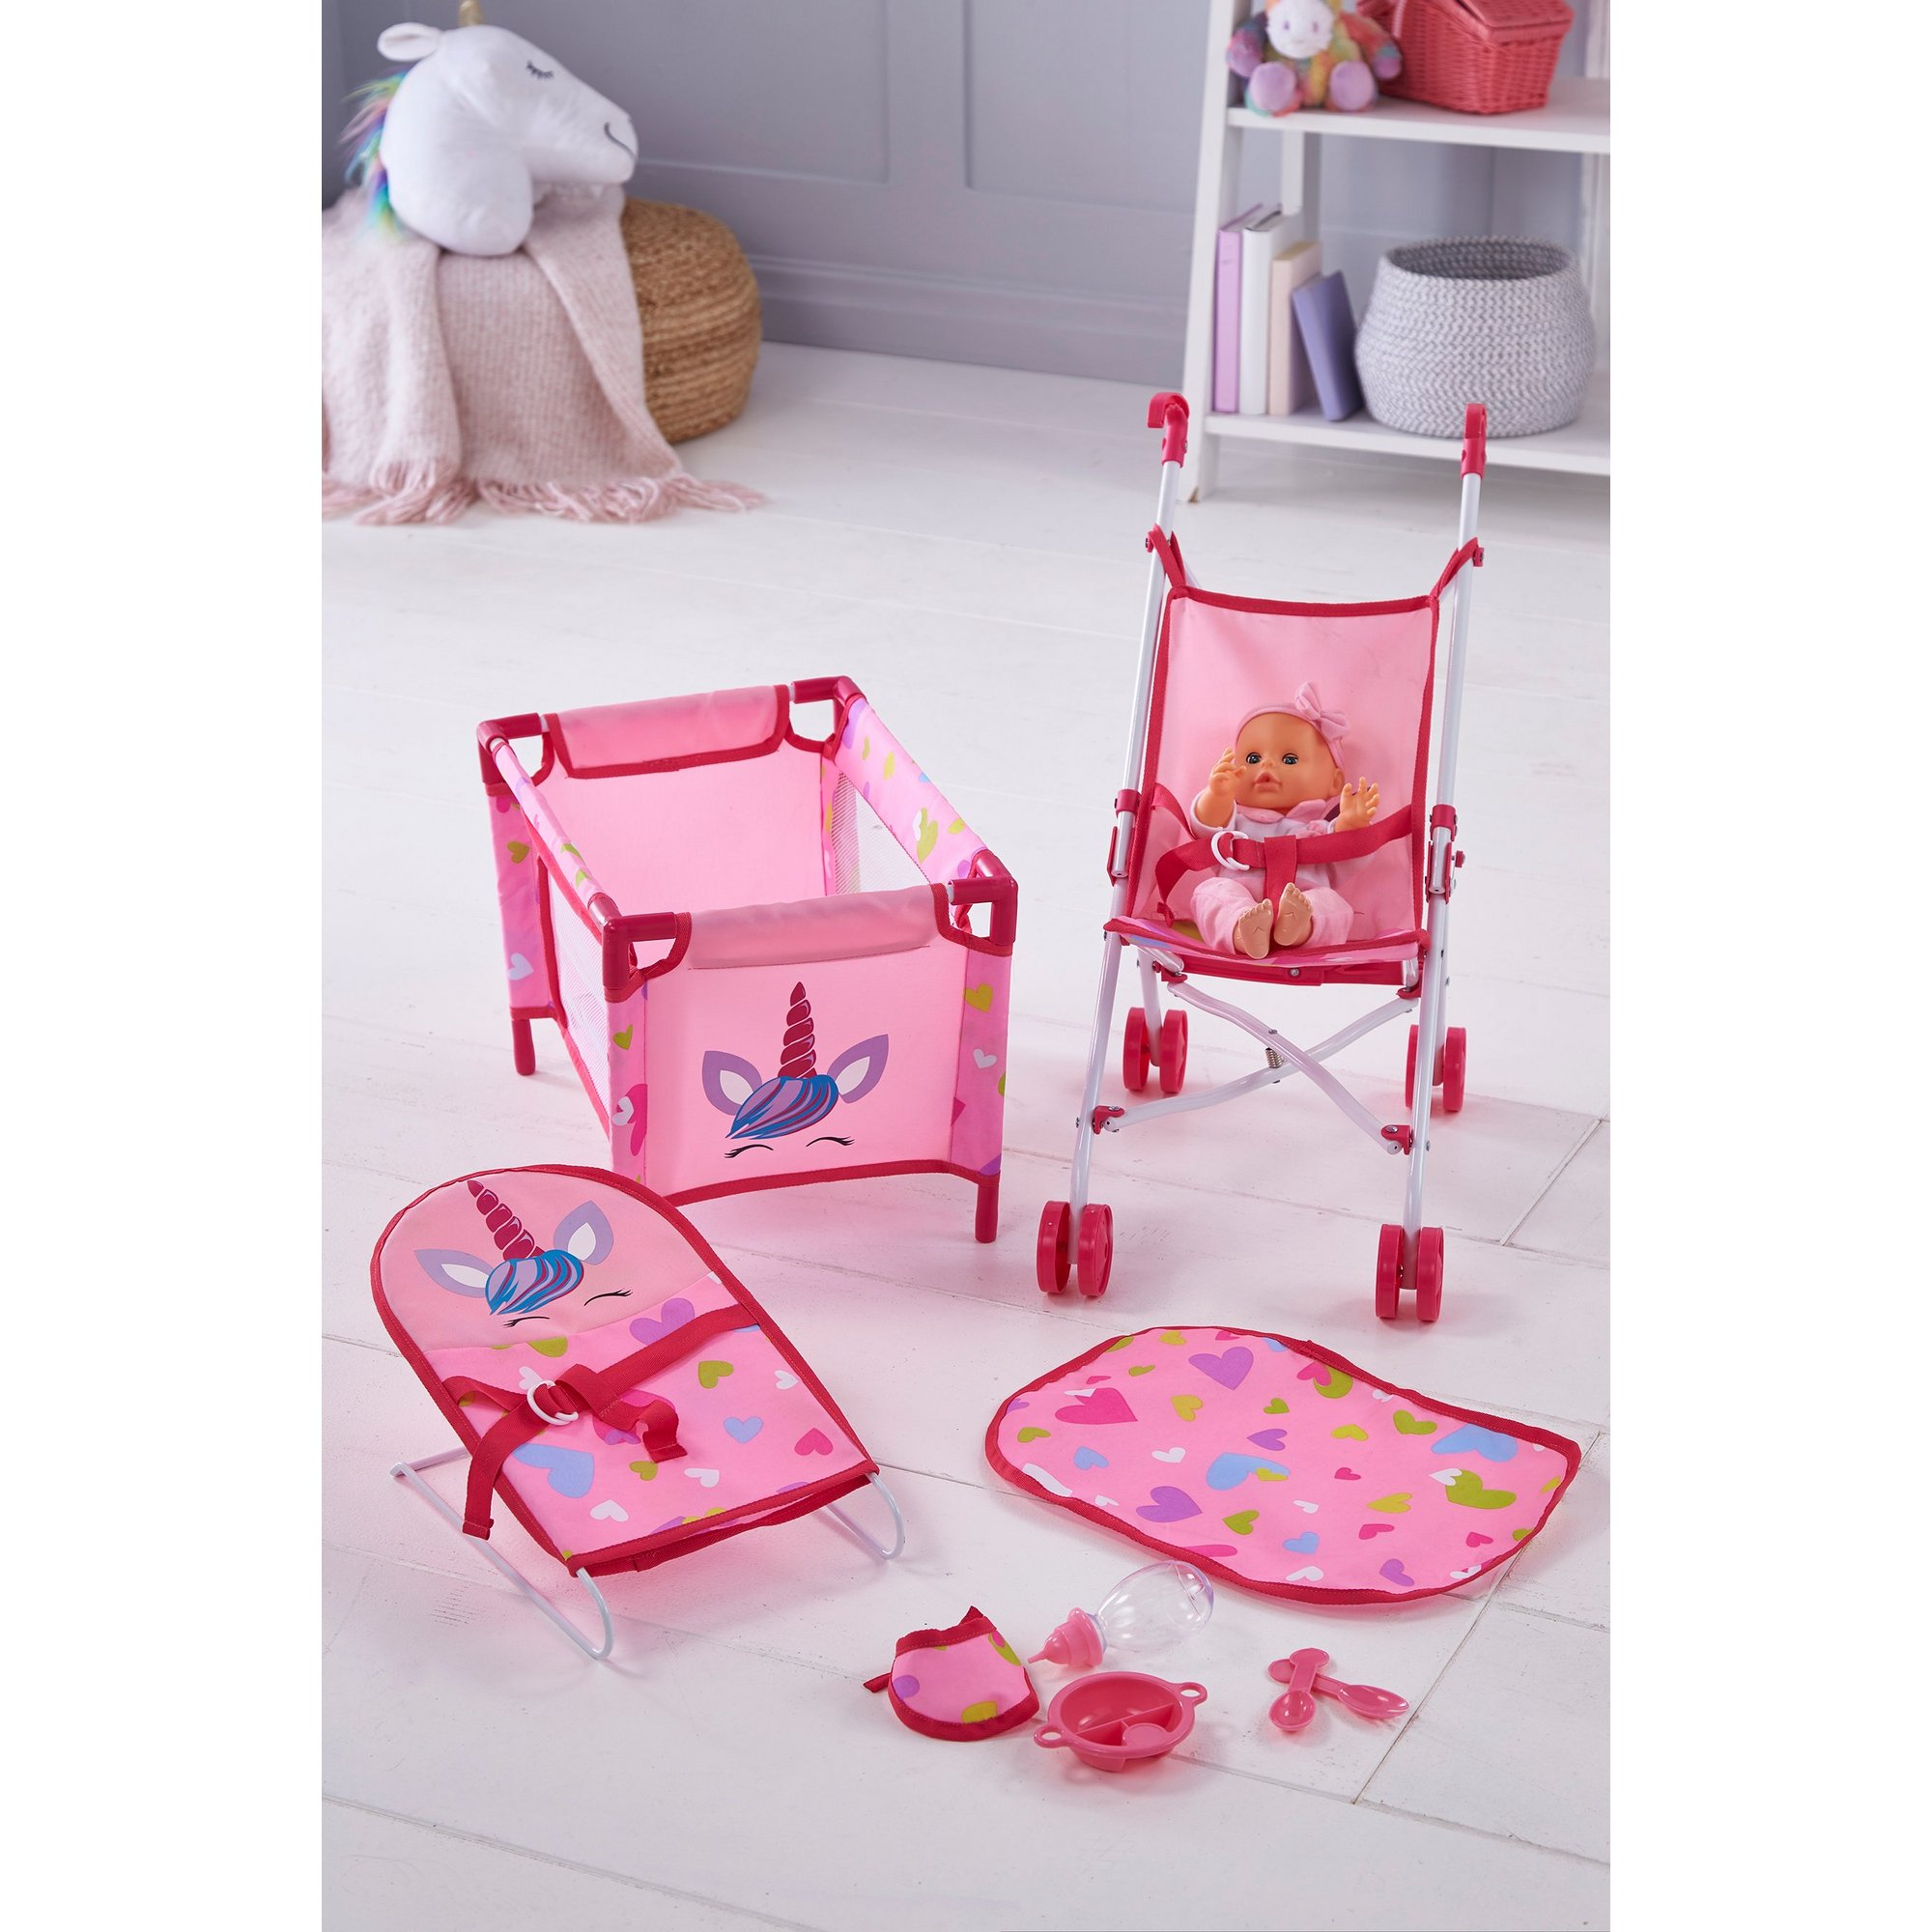 Image of Bambolina Doll Set with Stroller Bouncer and Travel Cot